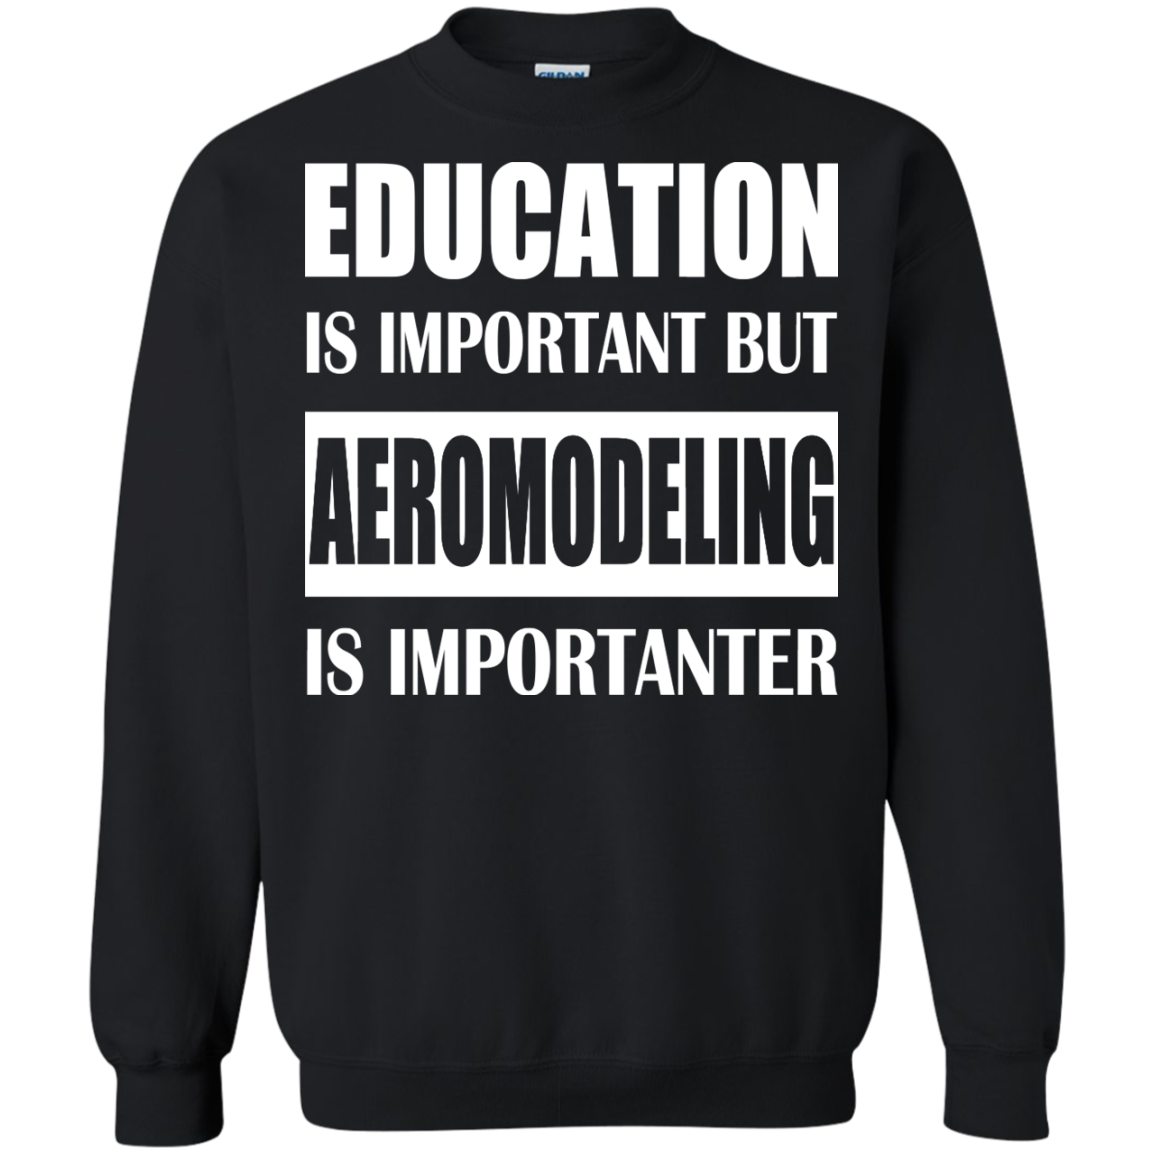 Education Is Important But Aeromodeling Is Importanter Sweatshirts